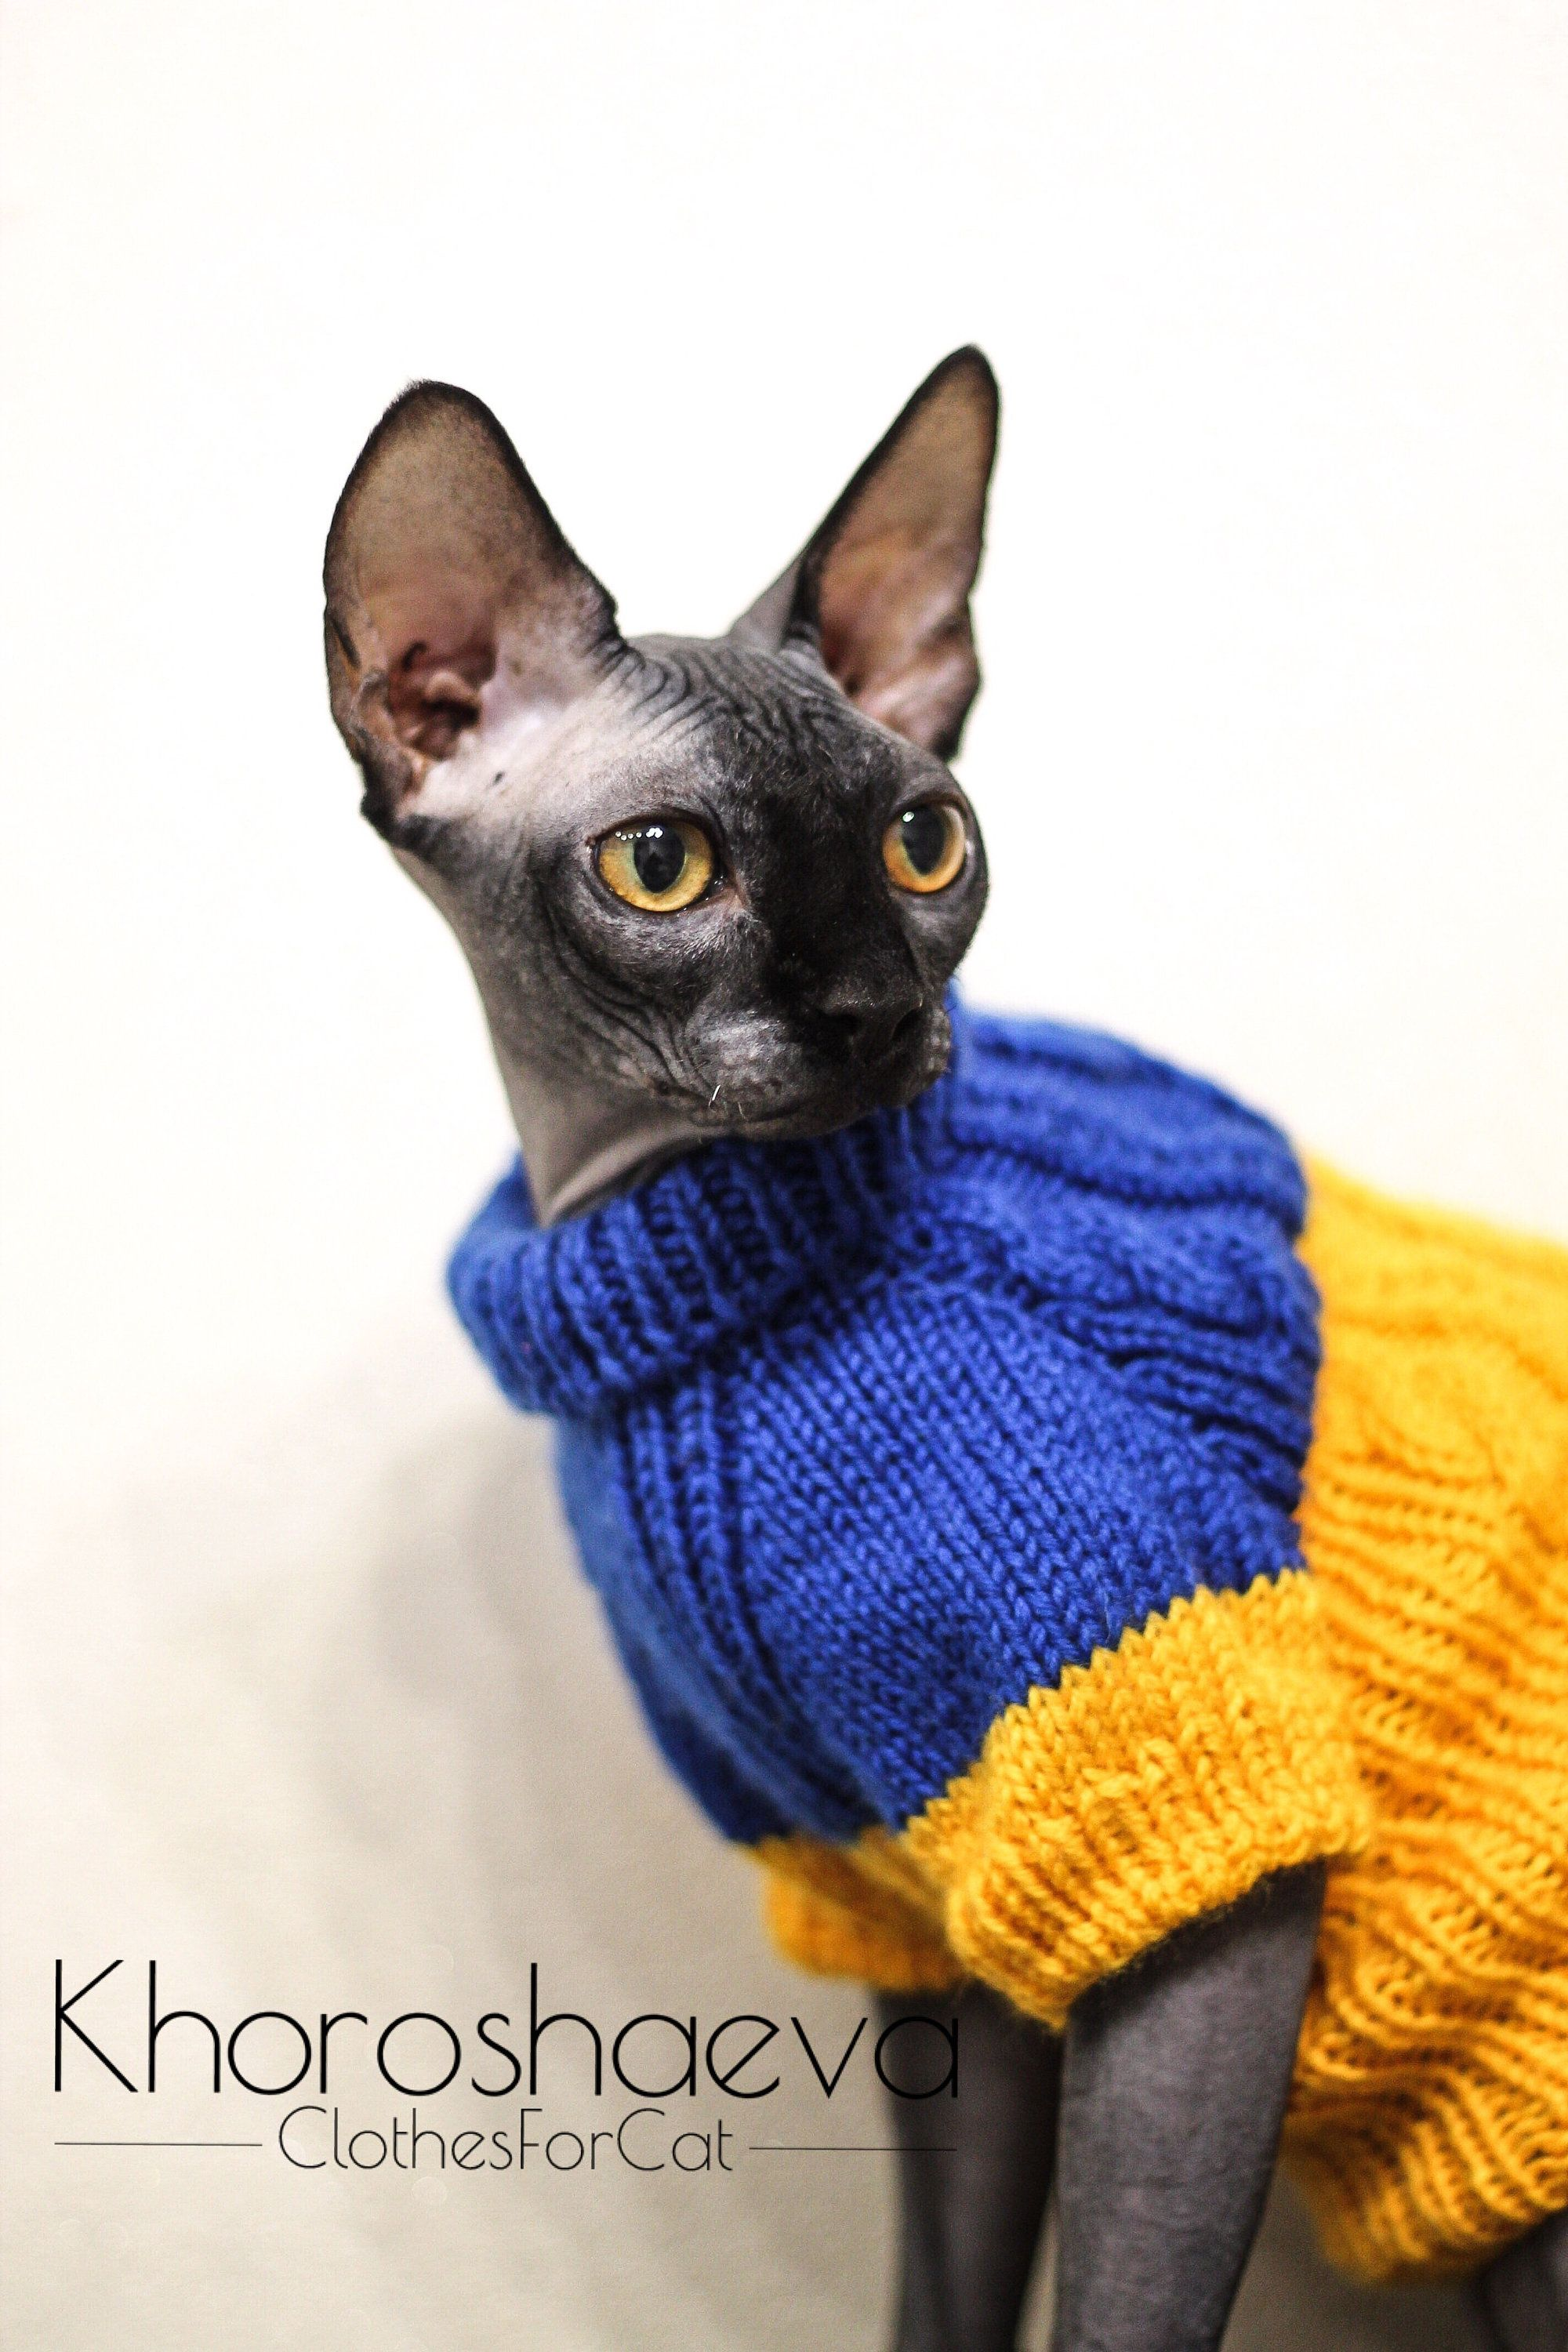 Hand Knitted Sphynx's Sunny Cozy Jumper, Cat's Soft Pullover With Arans, Handmade Sweater Gift For Cat, Cat's Clothes T-shirt For Sphynx